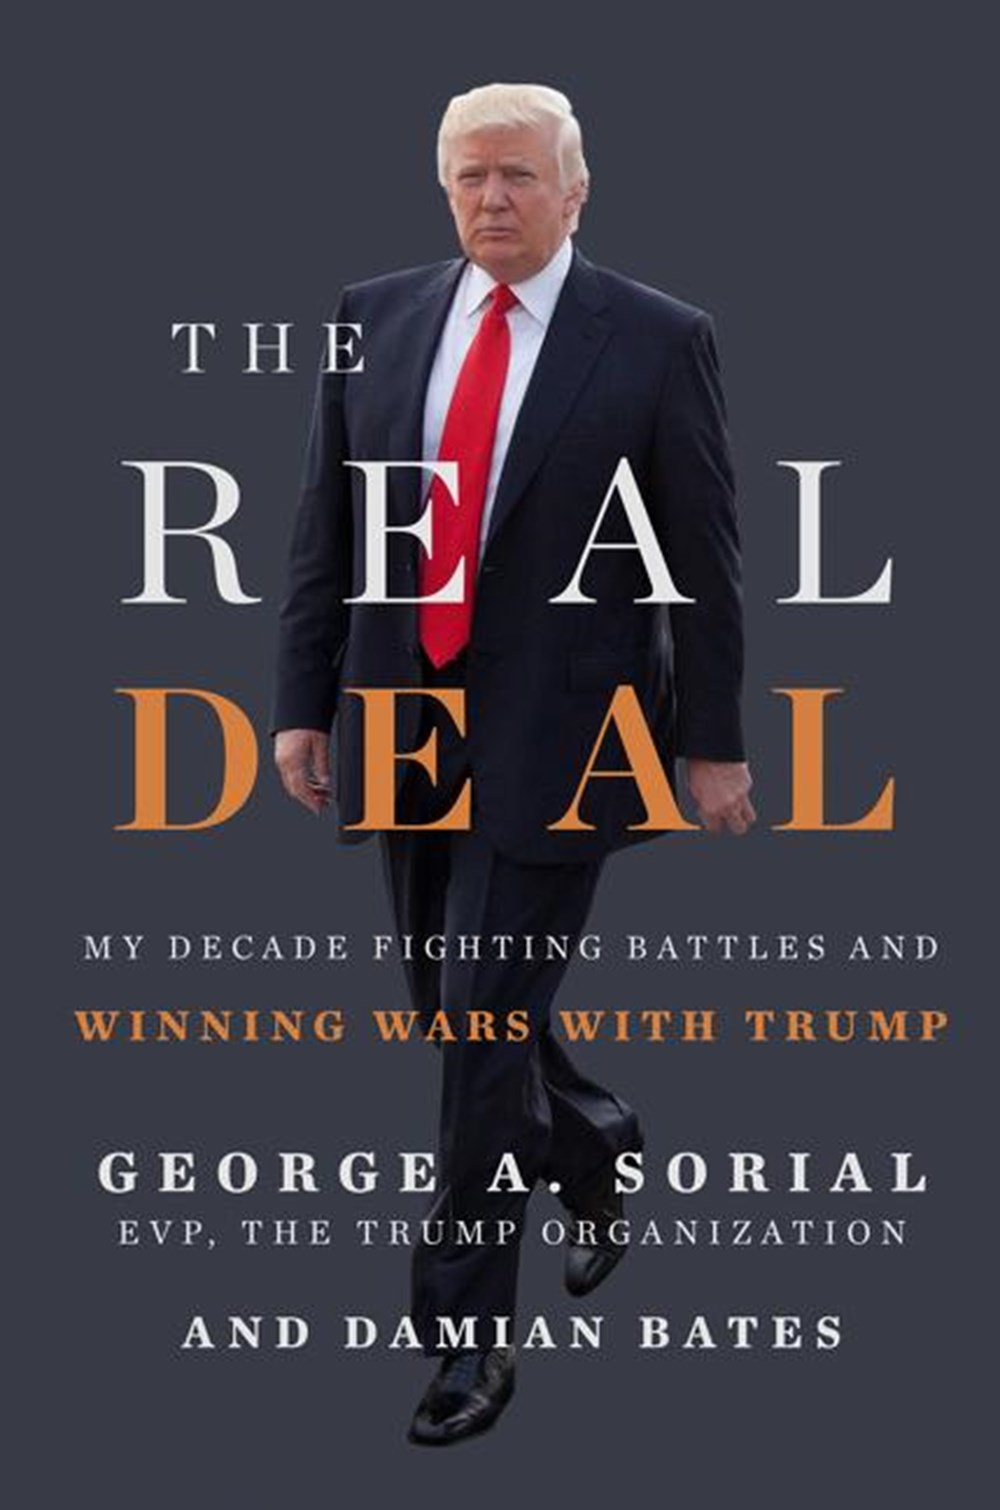 Real Deal My Decade Fighting Battles and Winning Wars with Trump